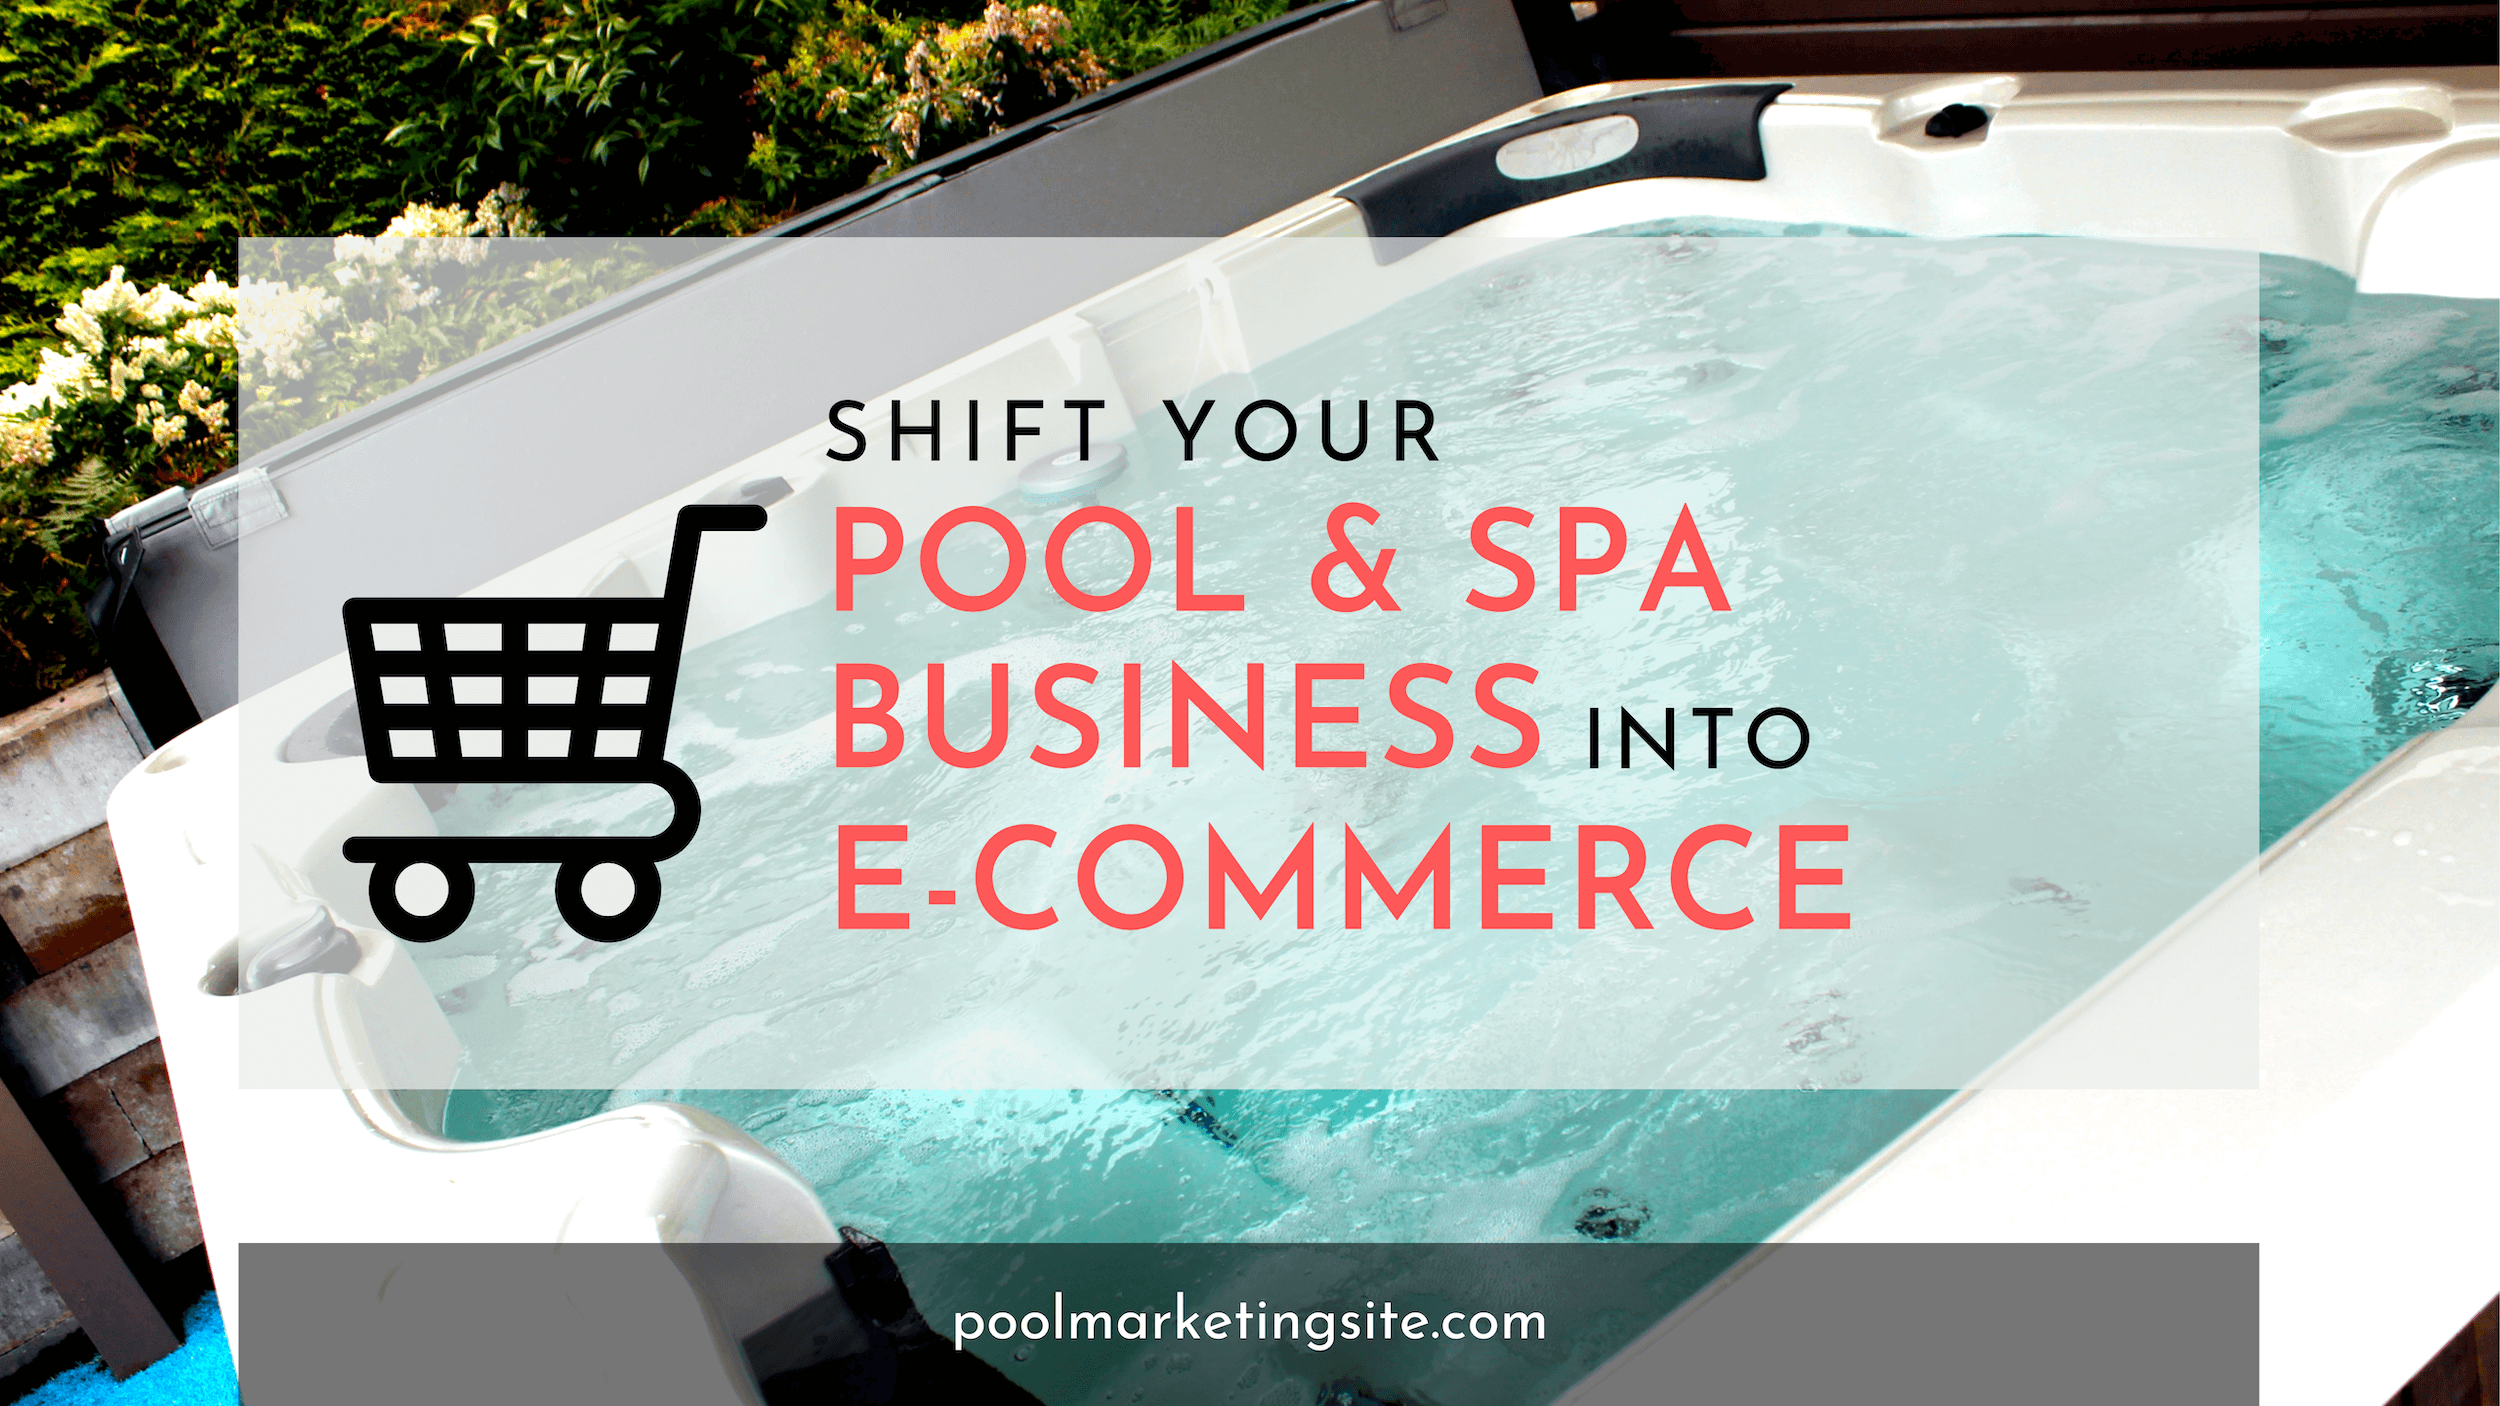 Shift Your Pool and Spa Business into E-Commerce